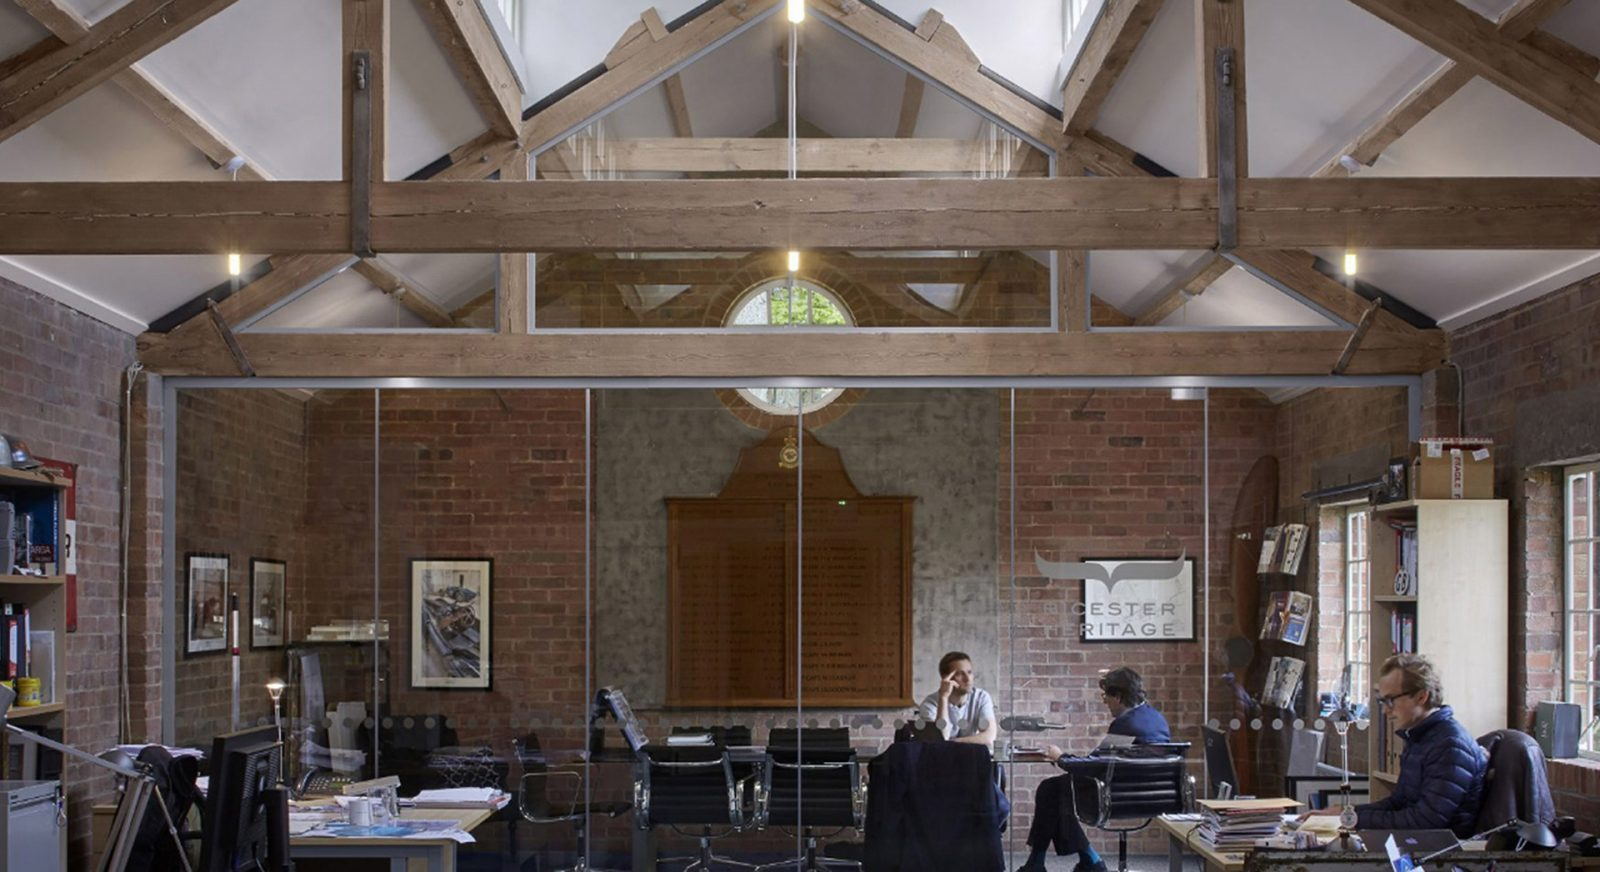 FT bicester airfield offices architects jersey architecture23